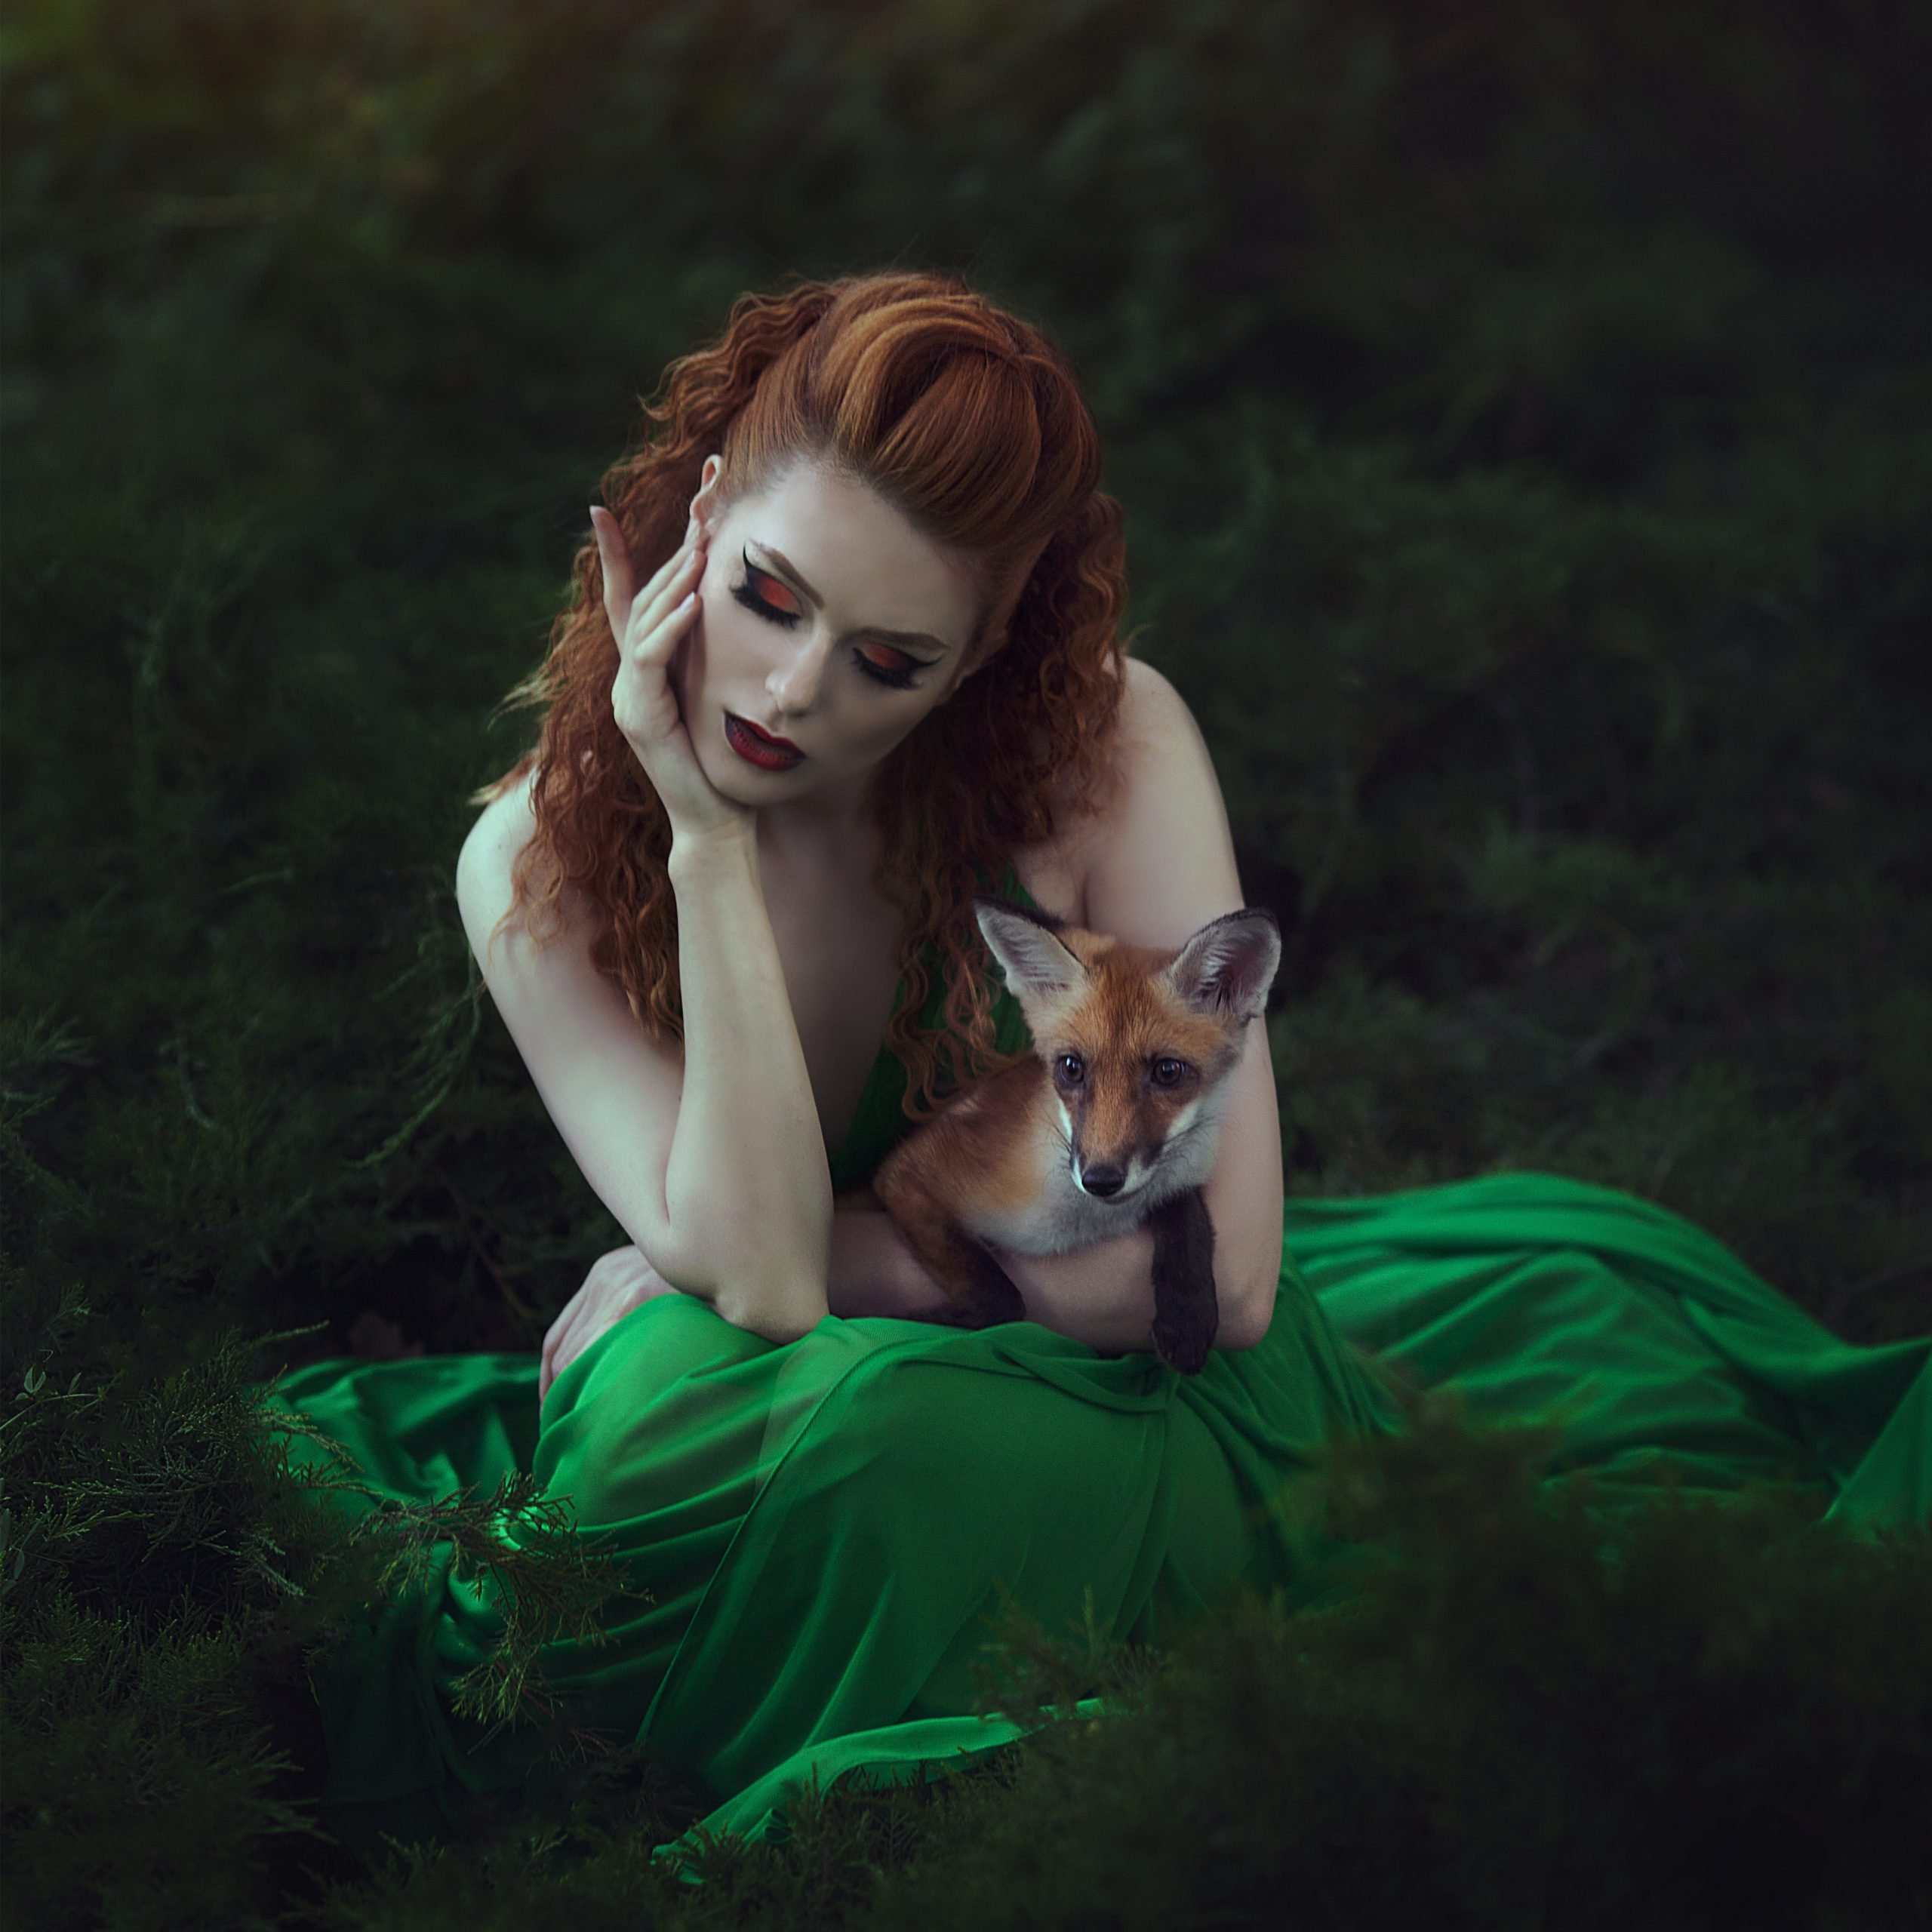 fantasy image of red haired woman with dragonfly wings in forest holding a fox